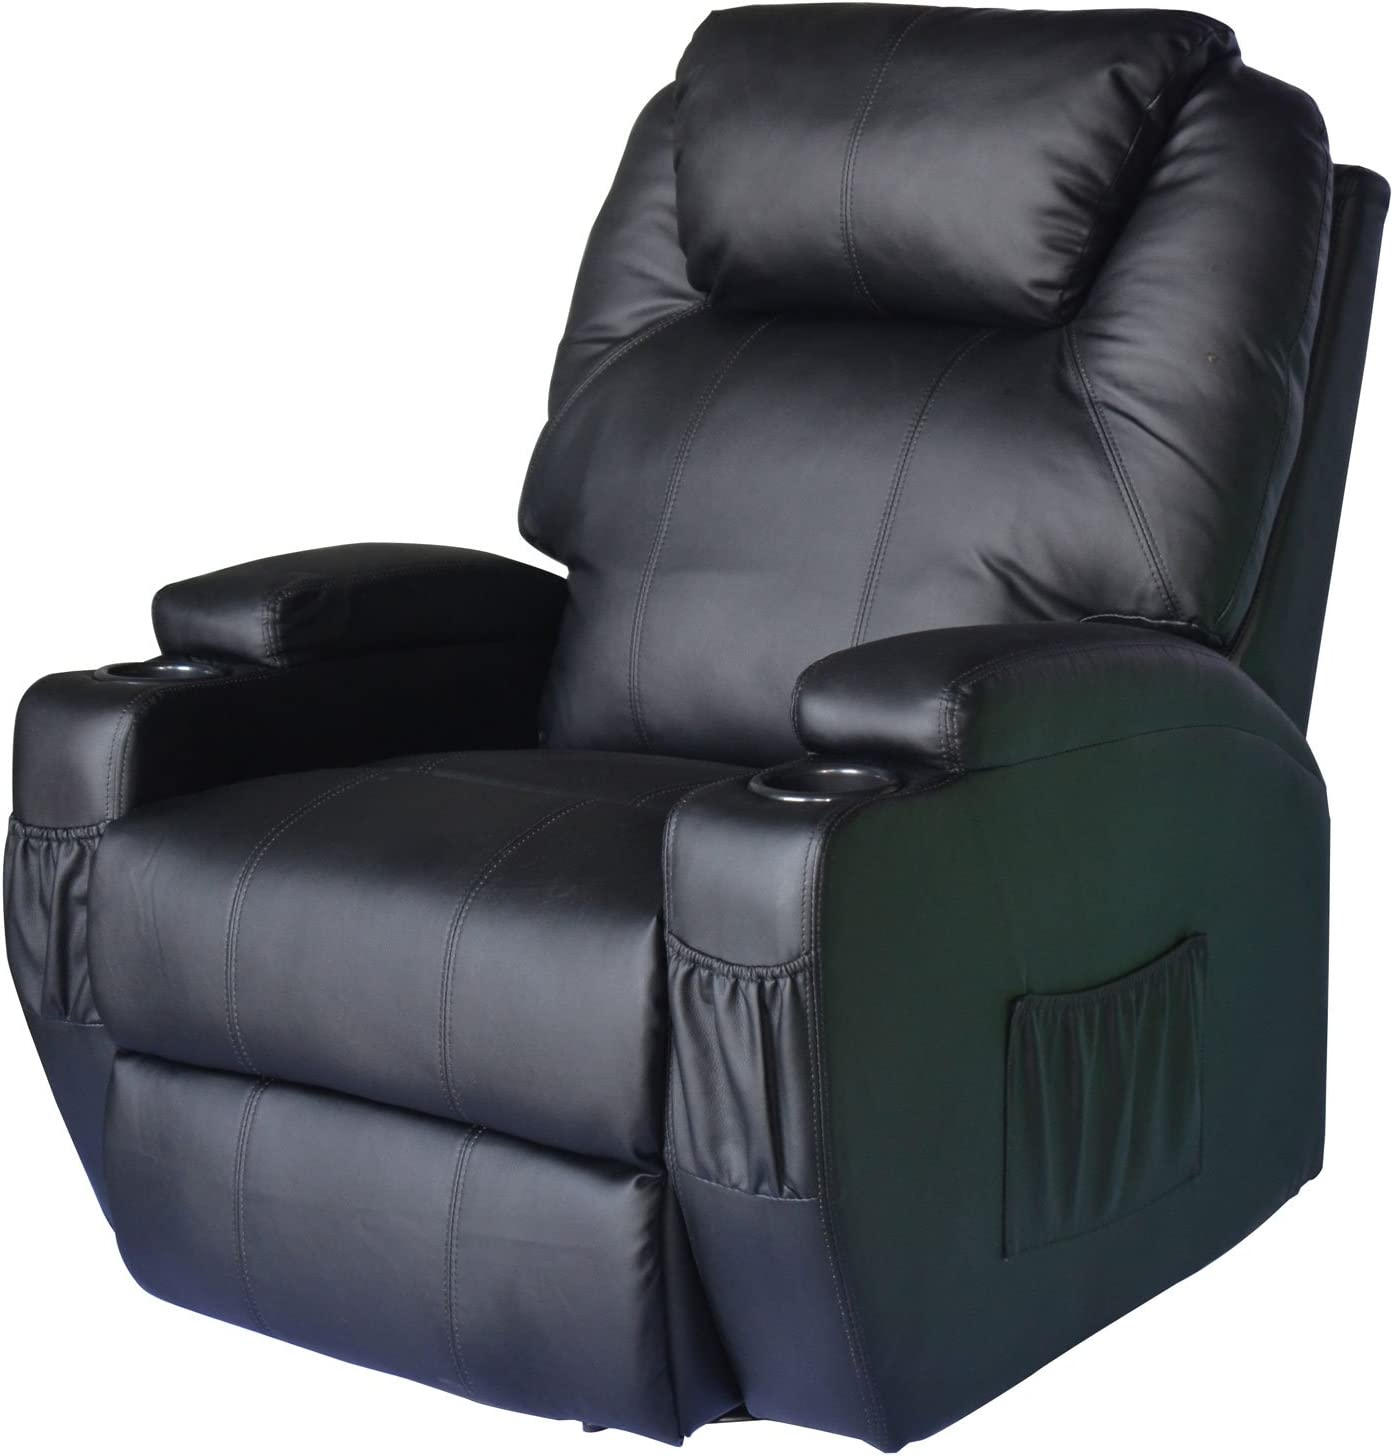 9 Best Recliners for Sleeping 2021 - Buyer's Guide